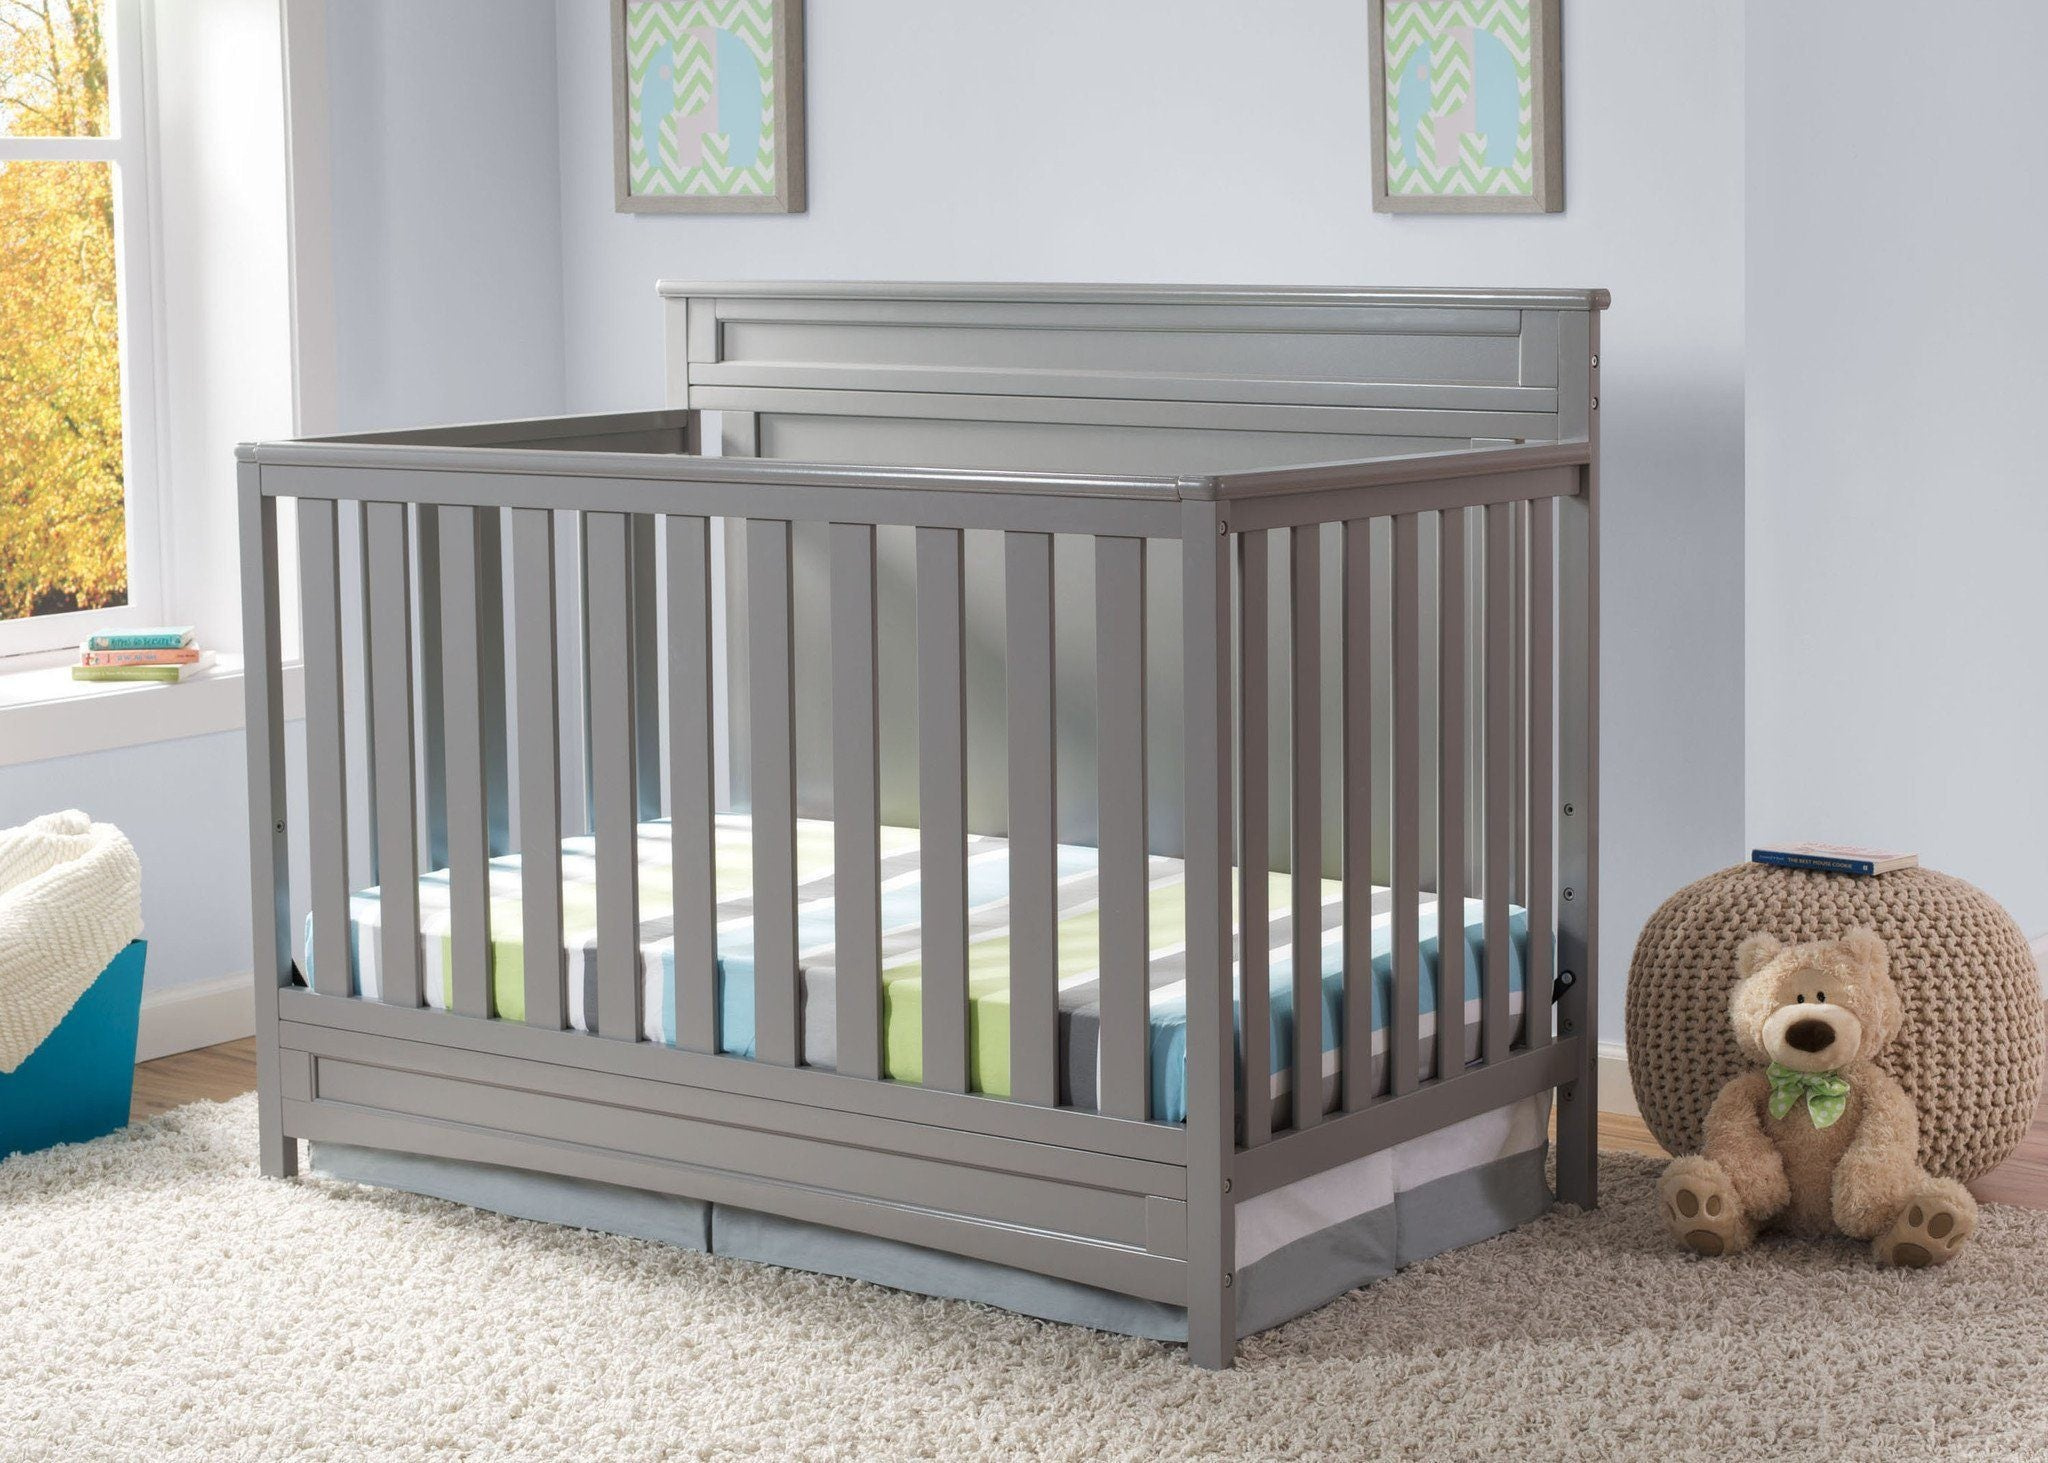 Delta Children Grey (026) Prescott 4-in-1 Crib, Crib Conversion, Detailed View a1a